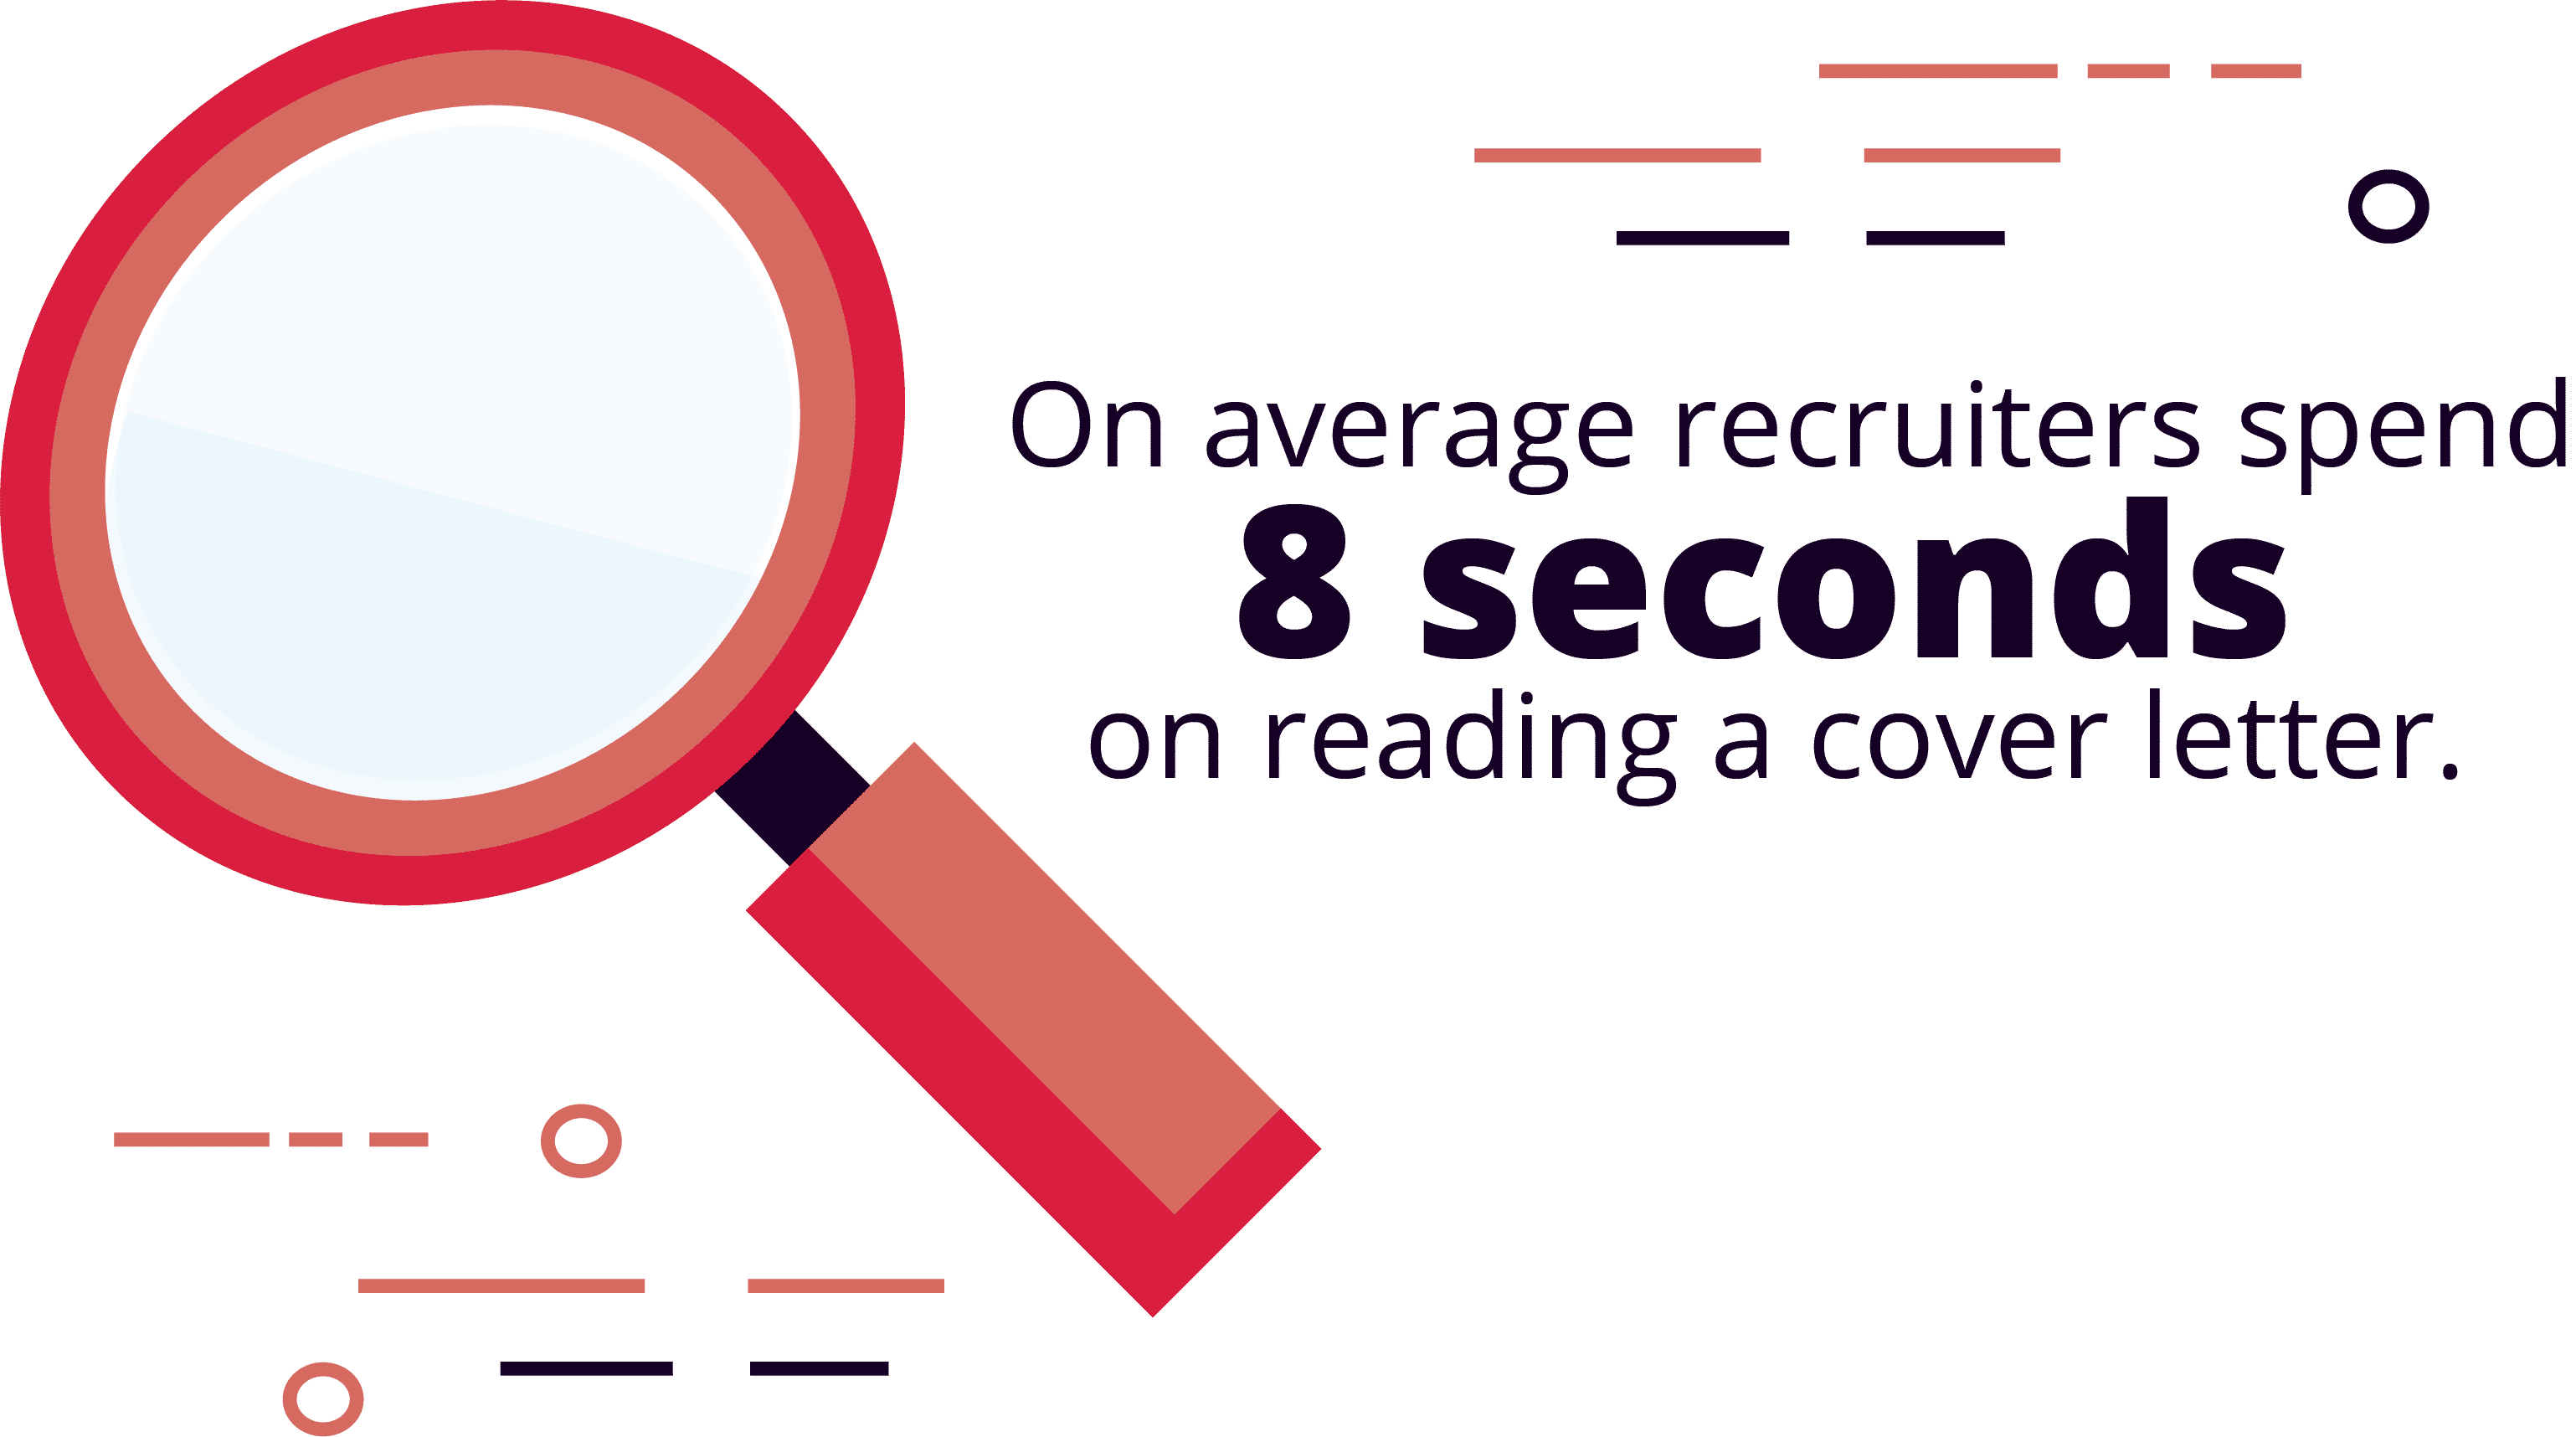 Recruiters Spend an Average of 8 Seconds Reading Cover Letters